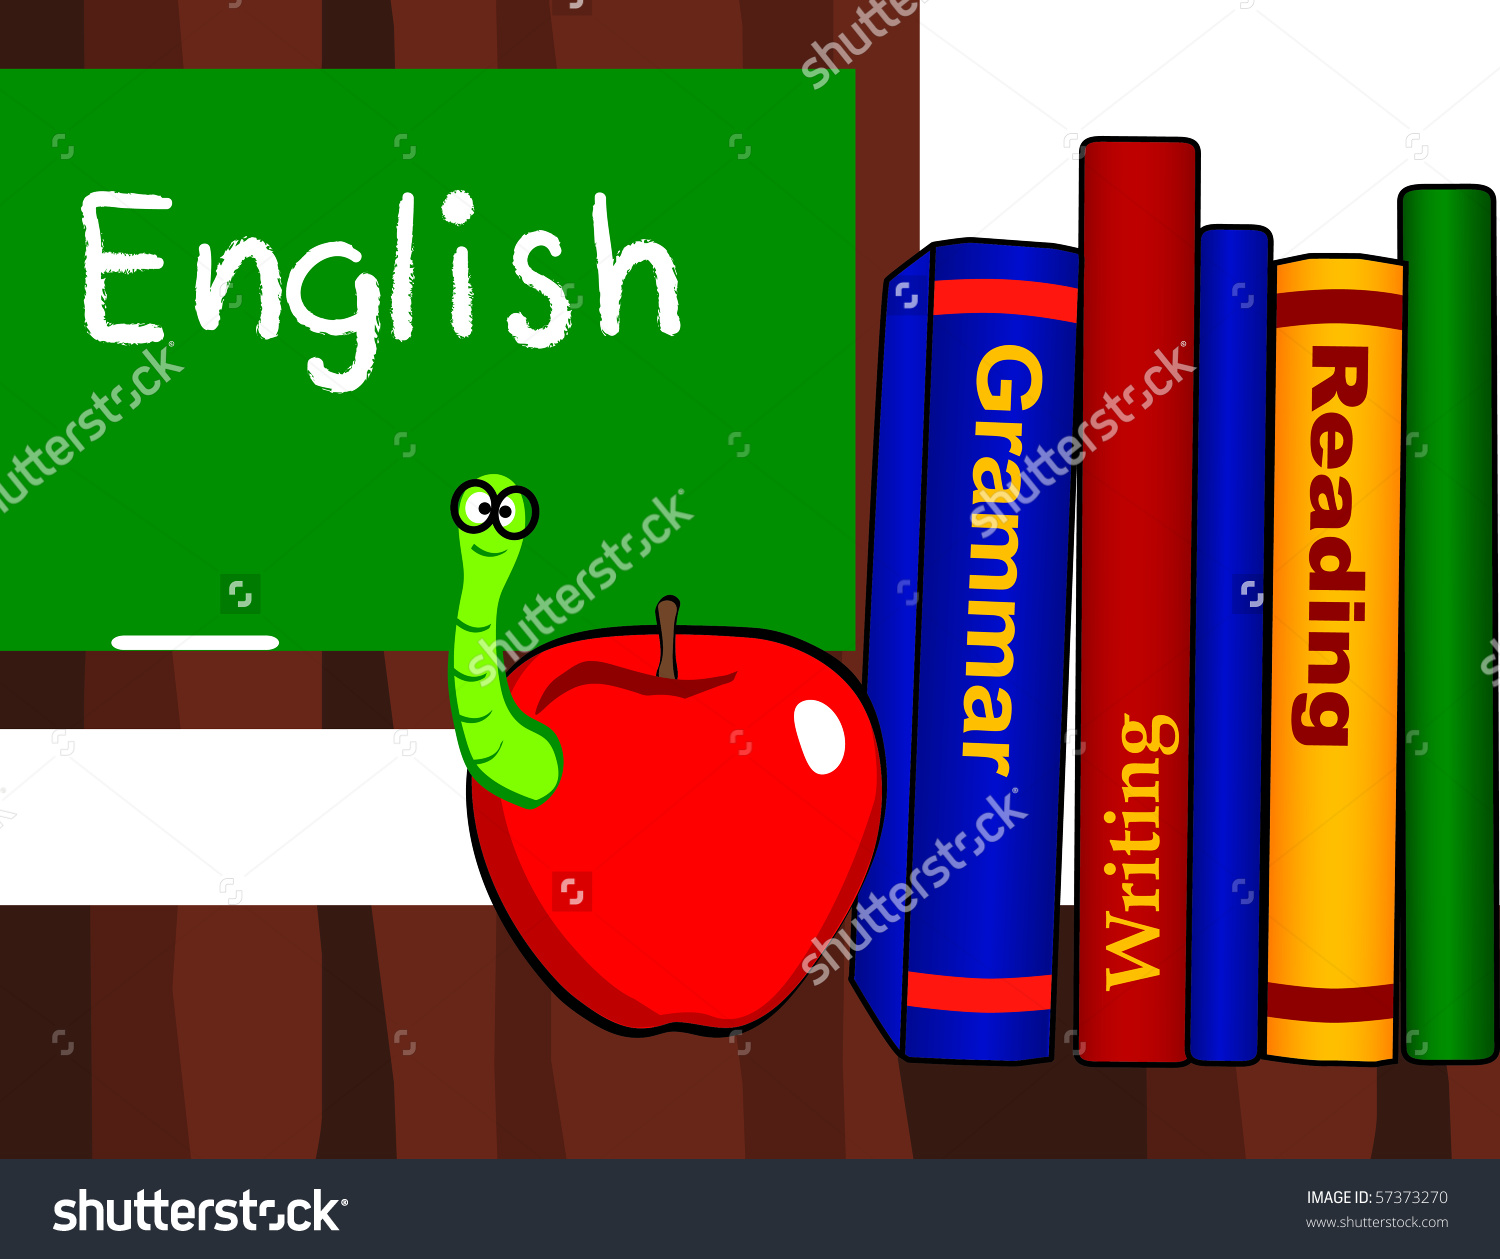 Clipart English Class English. Save to a lightbox